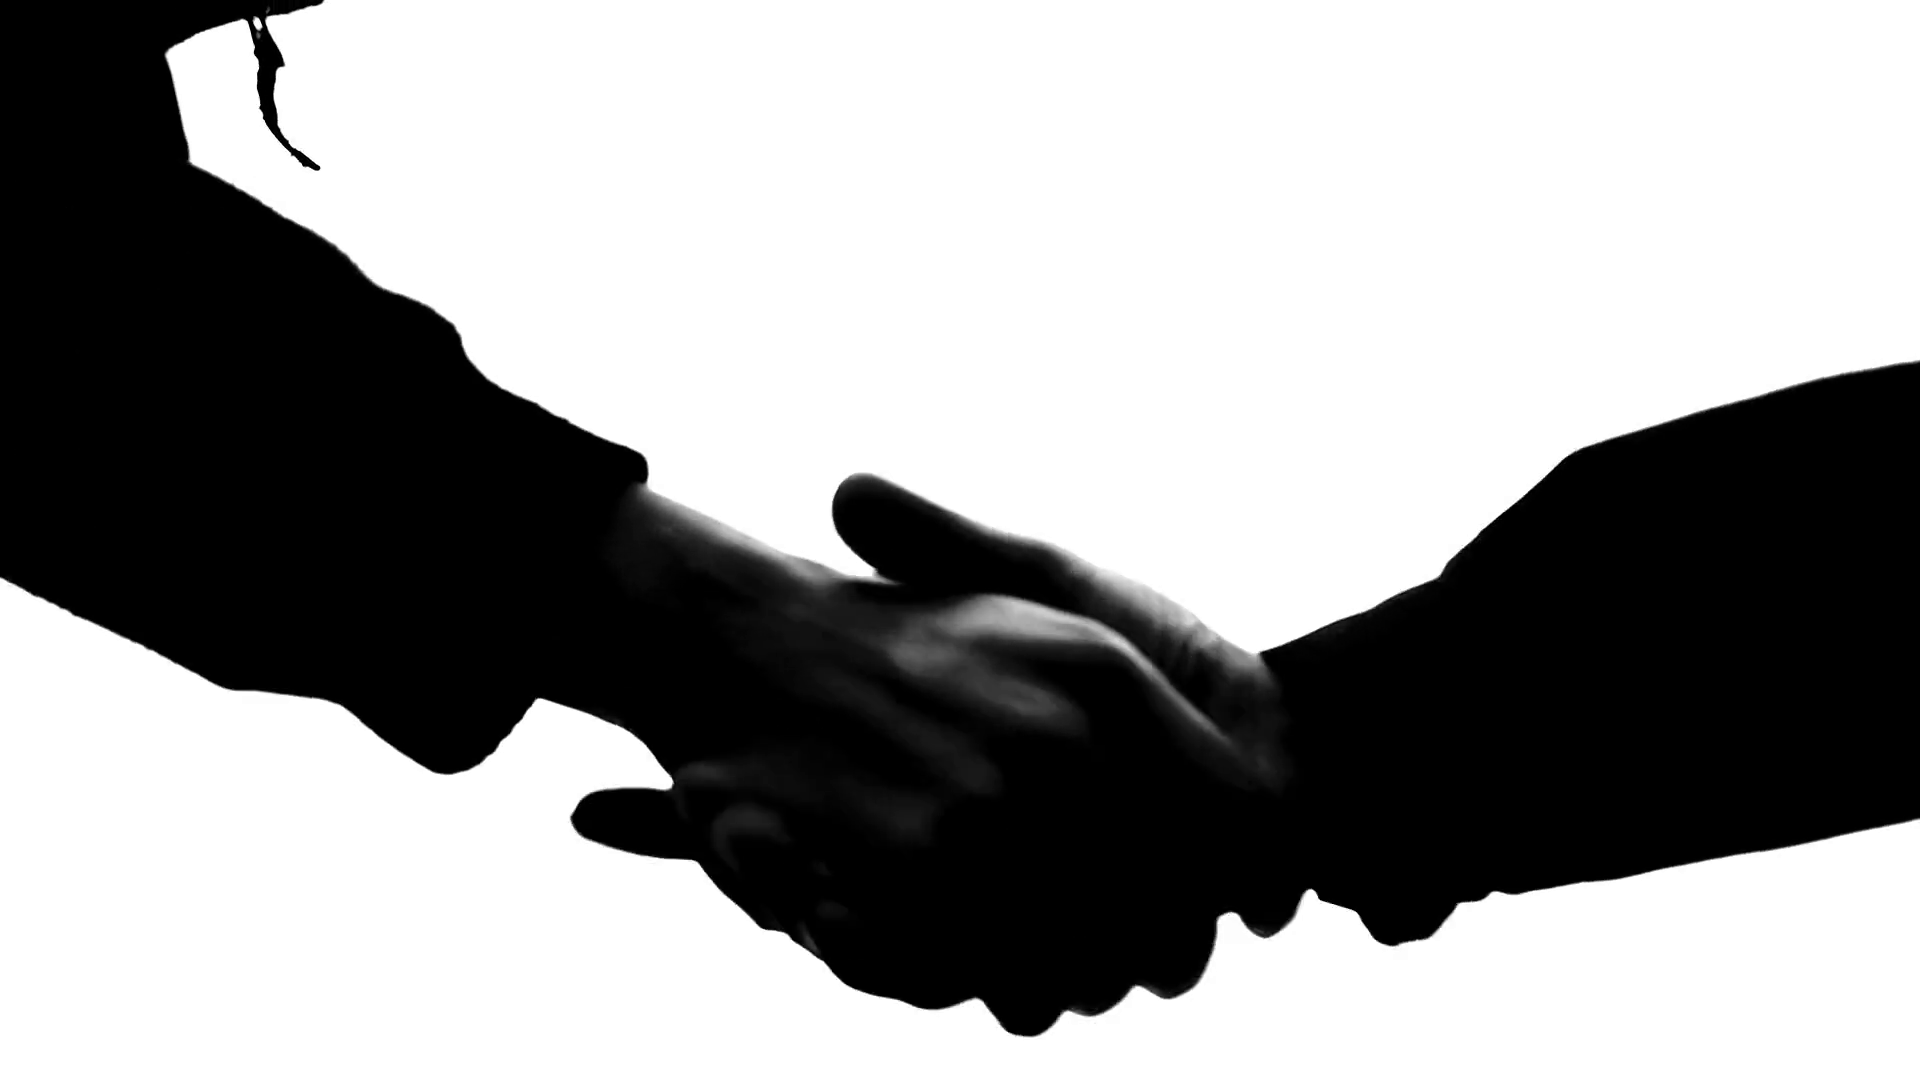 1920x1080 Black And White Silhouette Handshake 50 Fps Stock Video Footage